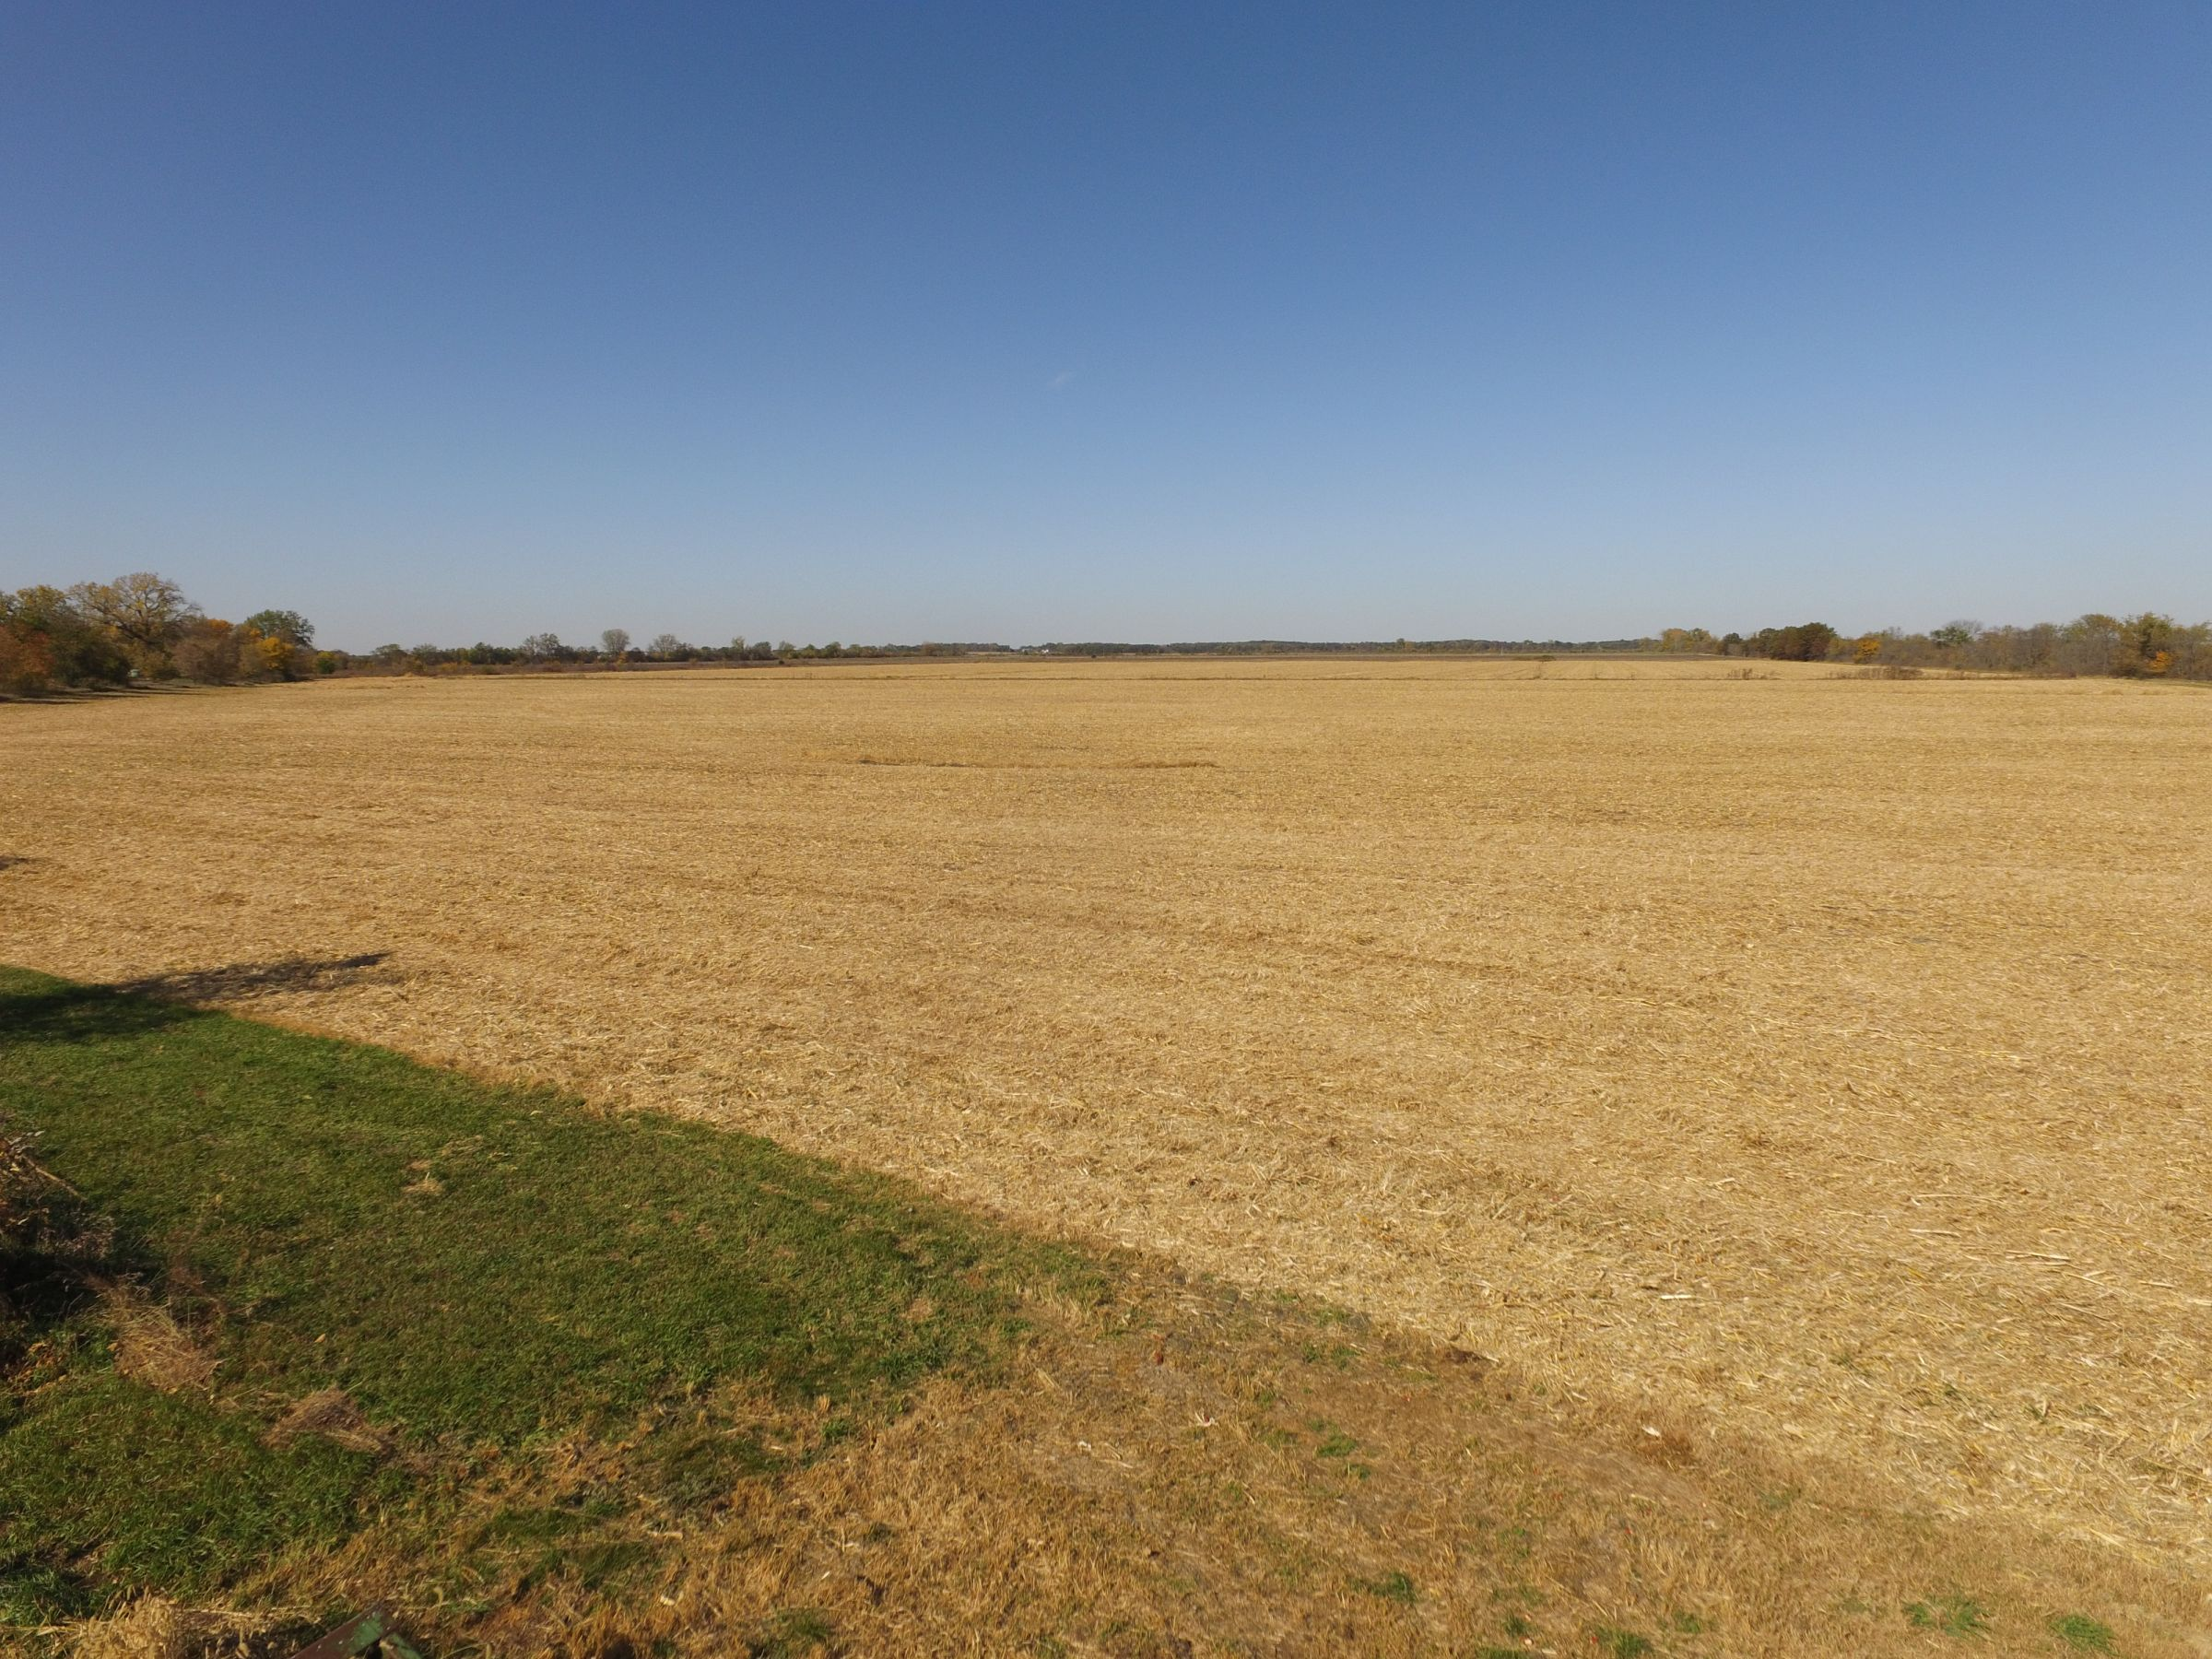 land-henry-county-illinois-240-acres-listing-number-15213-3-2020-10-22-163832.JPG